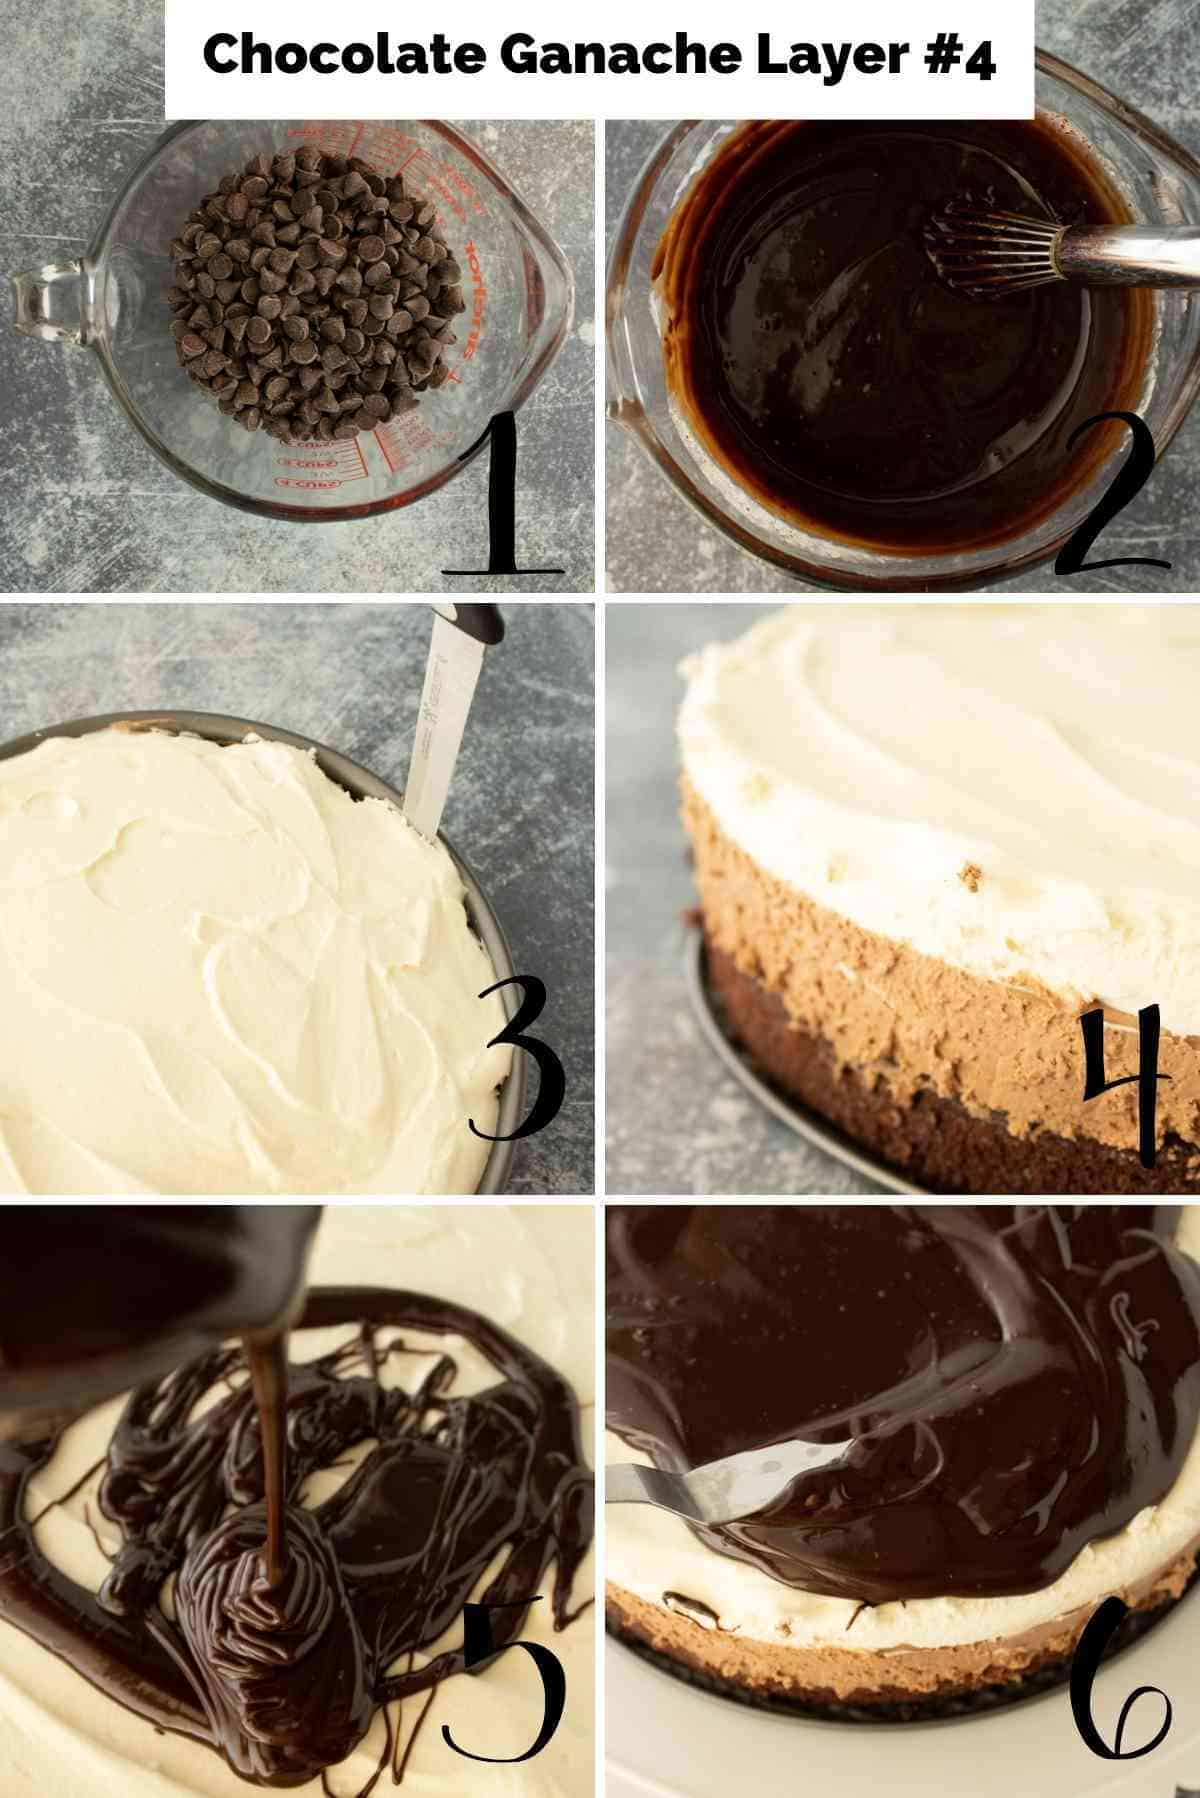 Preparation of the ganache and pouring it over the cake.